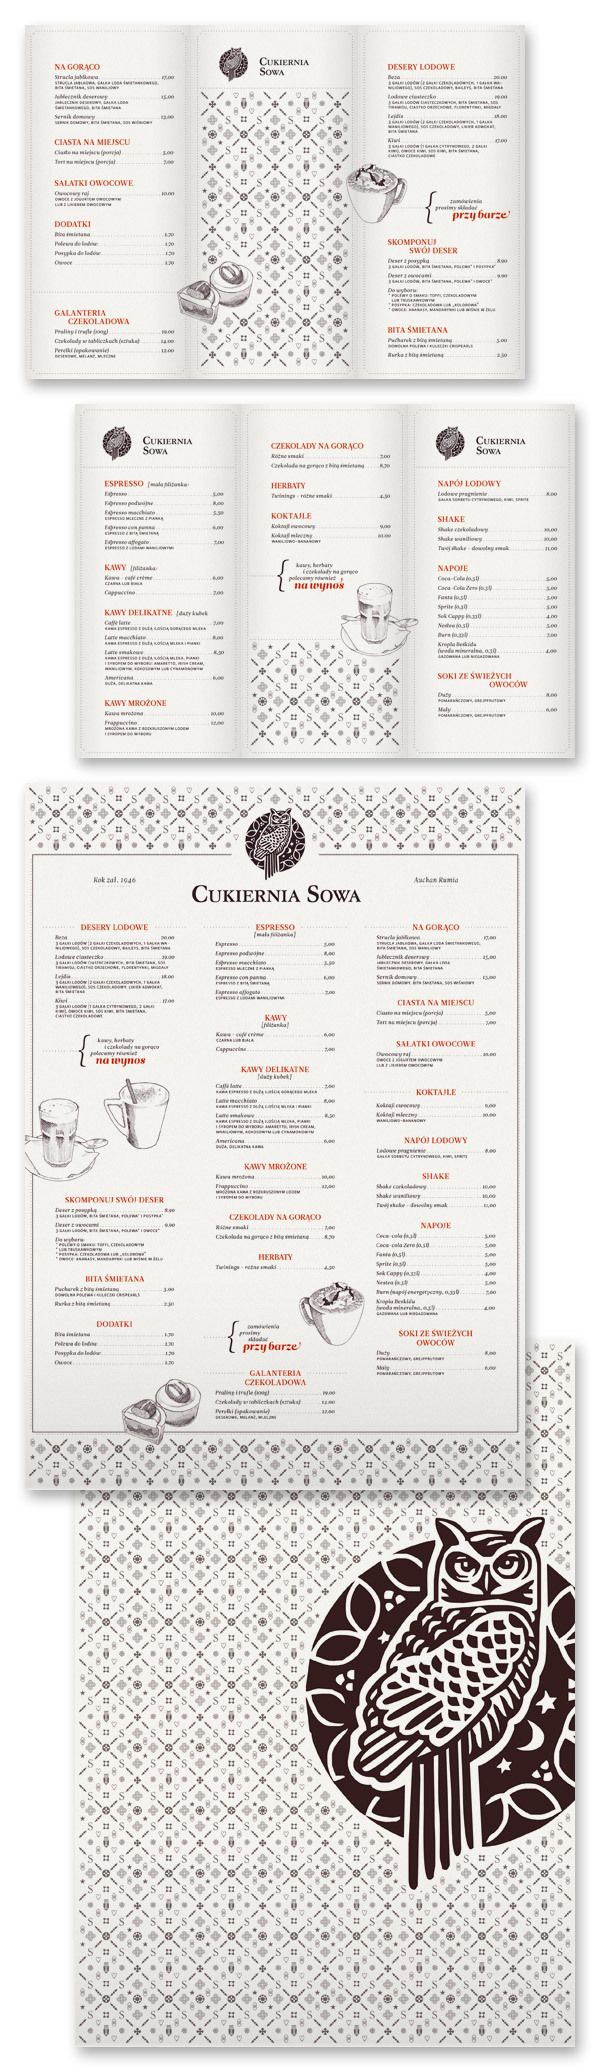 I like the backside of this menu, logo & pattern, with continuing pattern on the front.